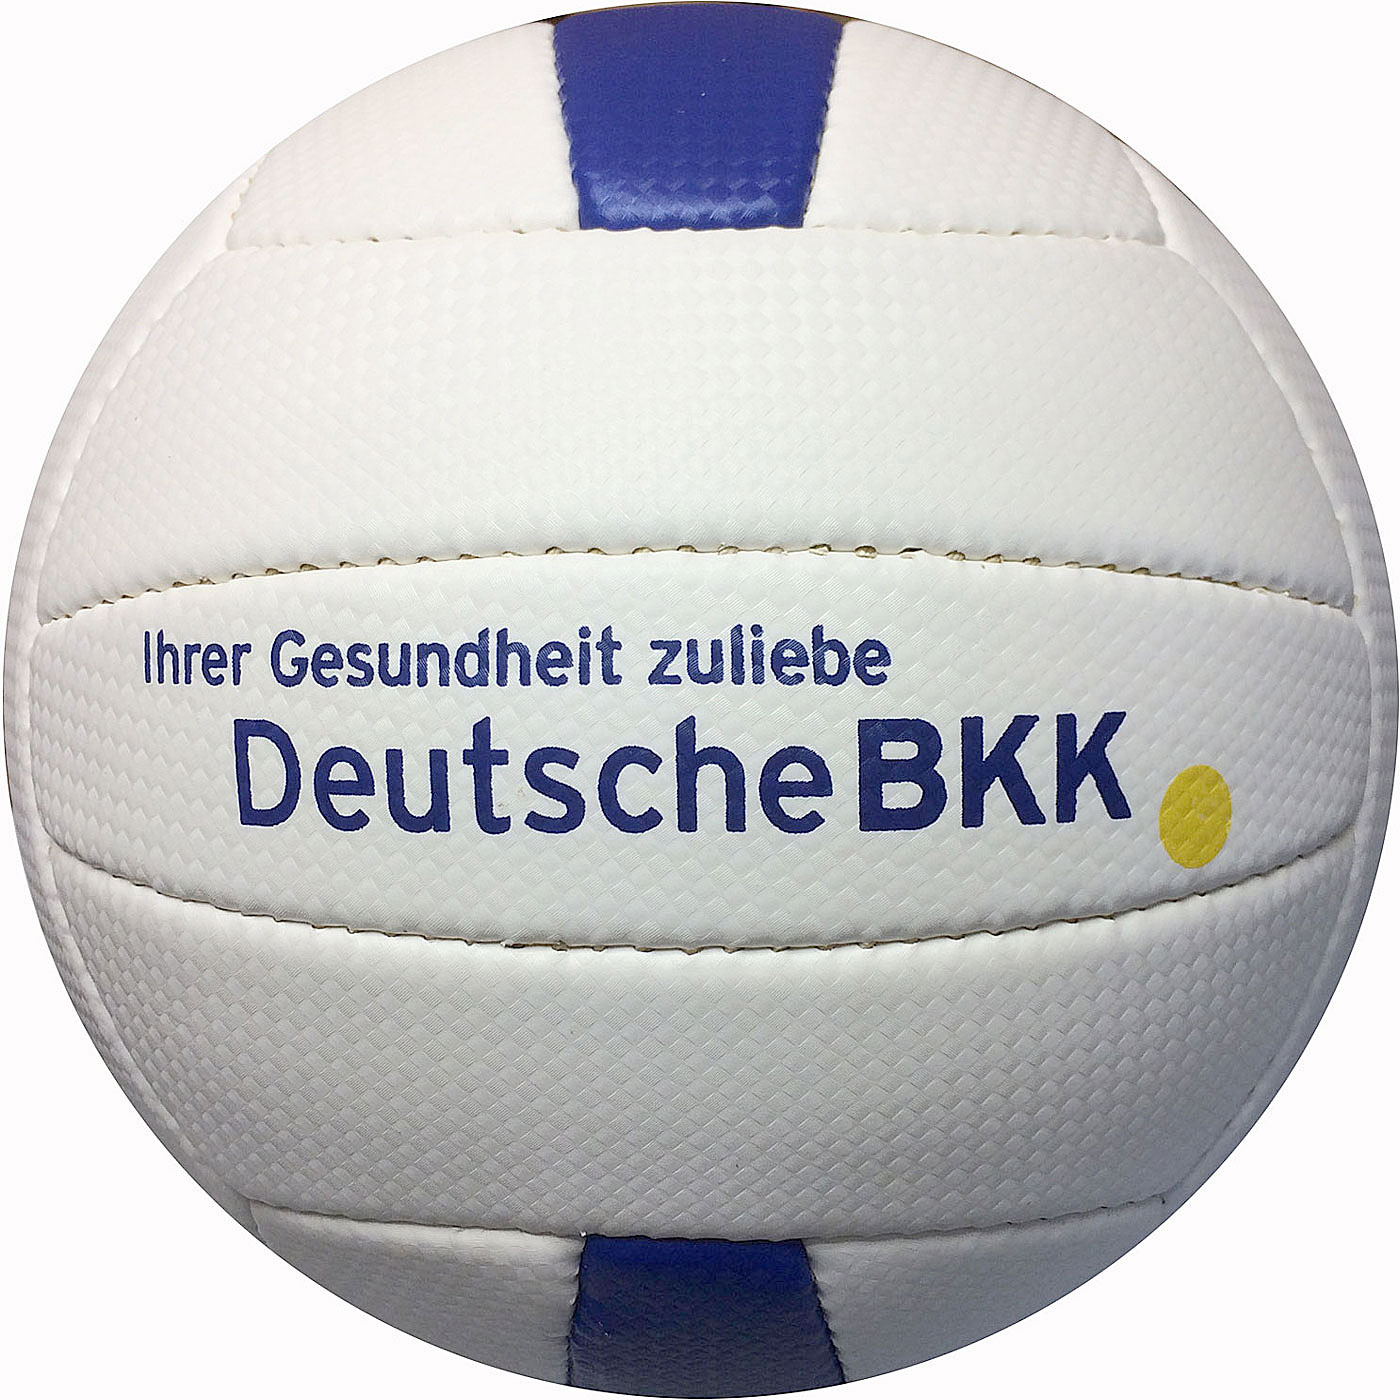 customized volleyballs printed conveniently delivered quickly